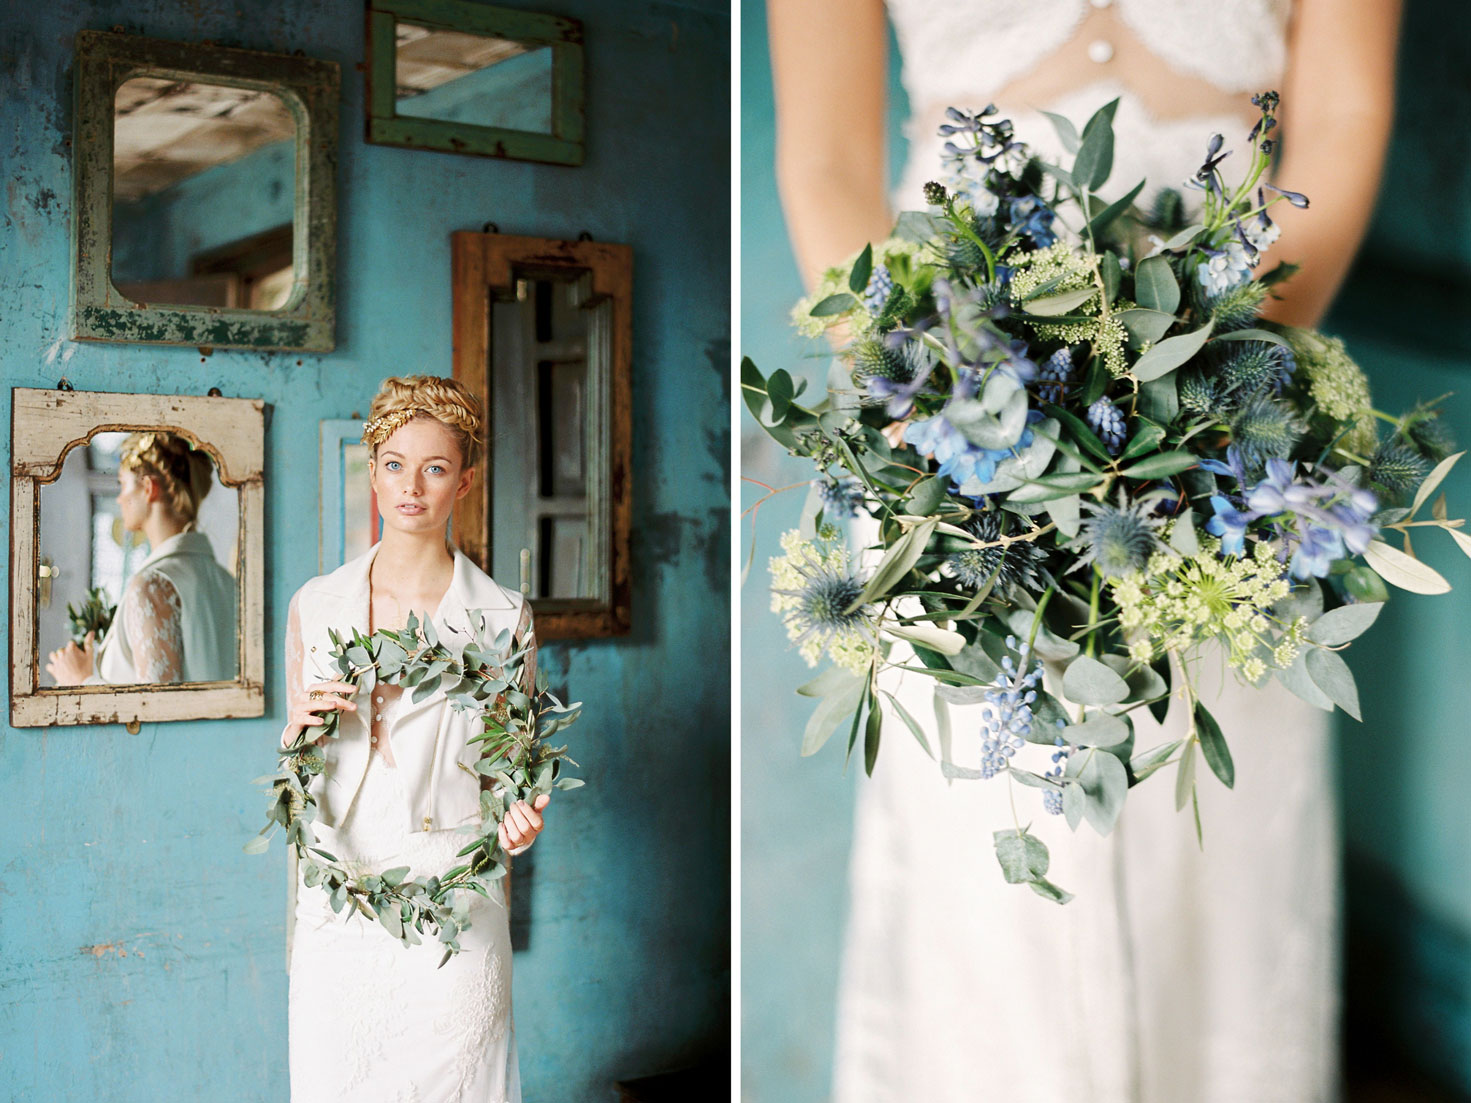 sarah-harper-floral-design-luxury-wedding-florist-flowers-oxfordshite-cotsworlds-gallery-P1